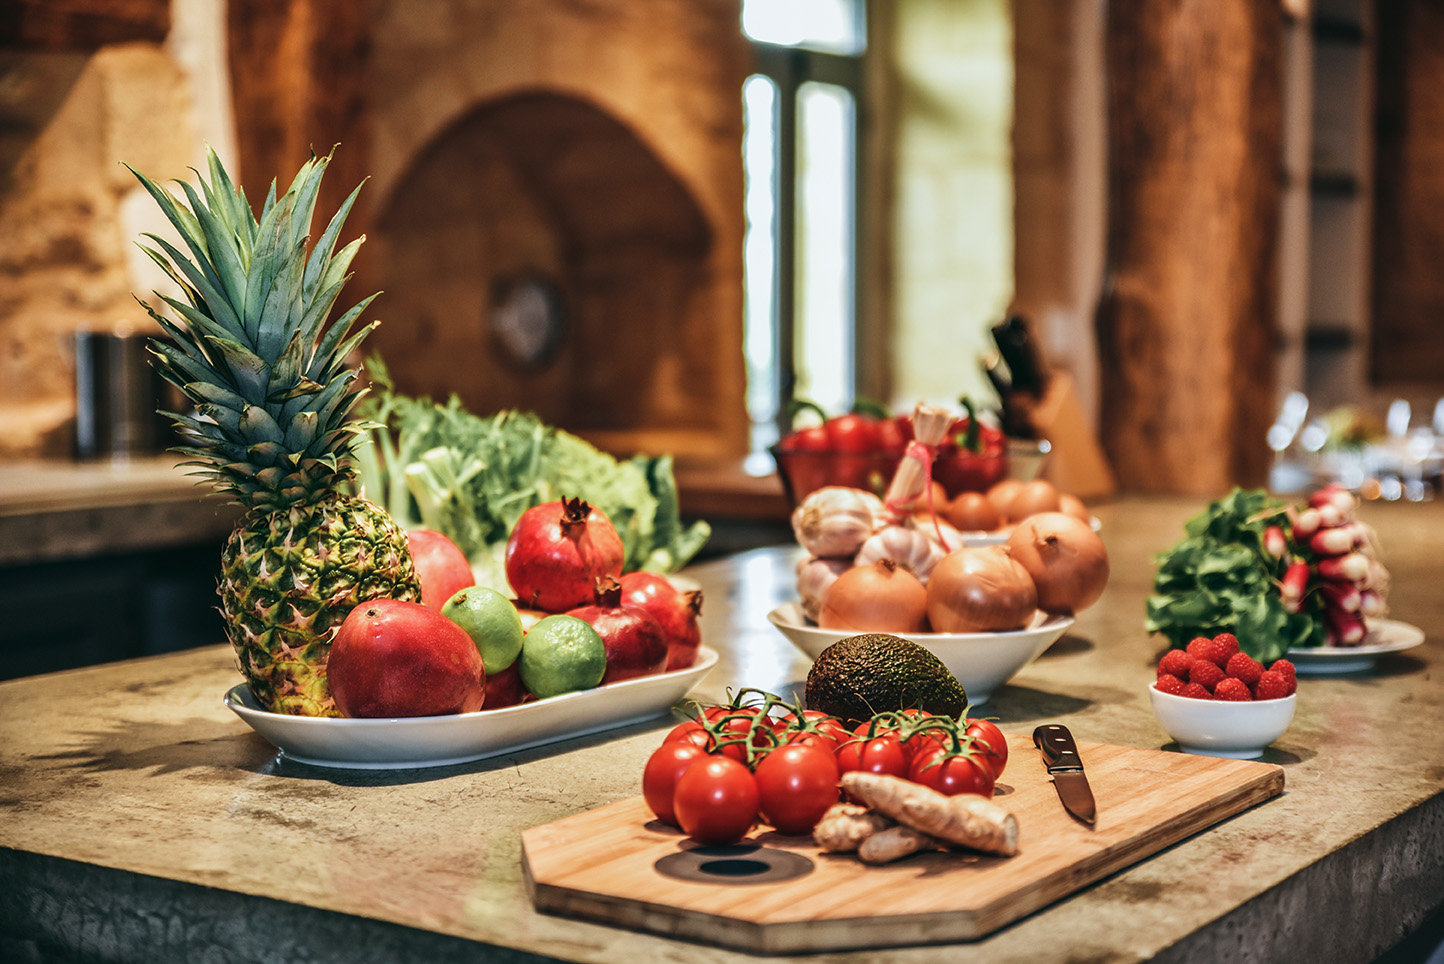 Fresh fruit and vegetables from the market on the concrete kitchen island in Le Mas, a Dordogne farmhouse which can accommodate up to 10 people